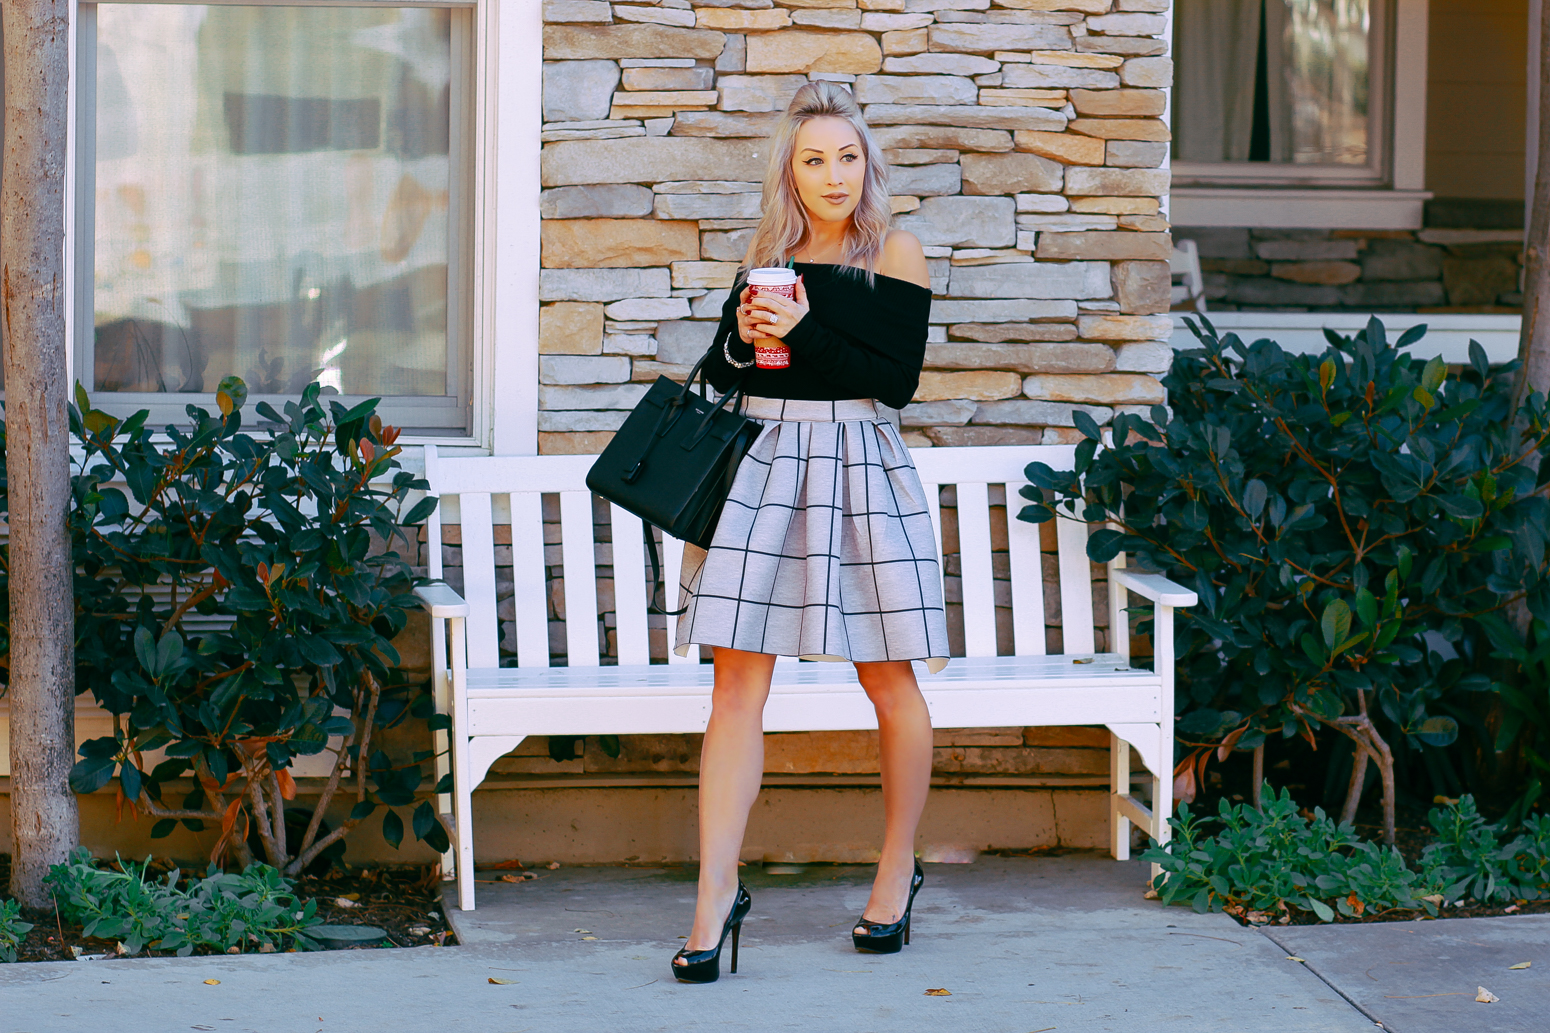 Blondie in the City | IG: @HayleyLarue | Grid Print Holiday Skirt | Holiday Outfit Inspiration